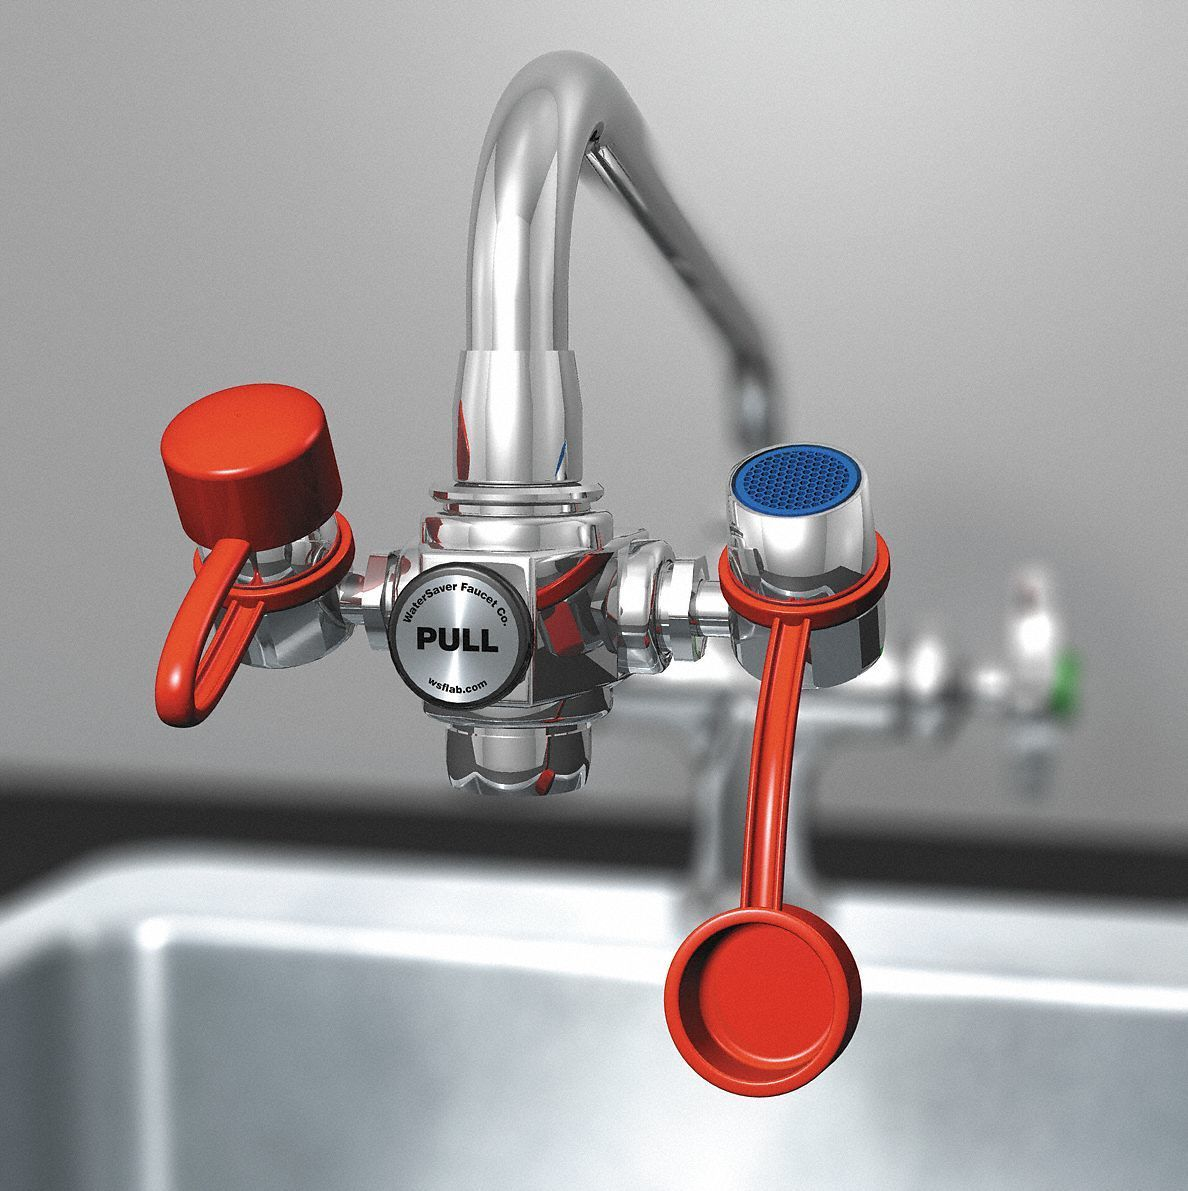 Faucet Eyewash Station   Faucet and House